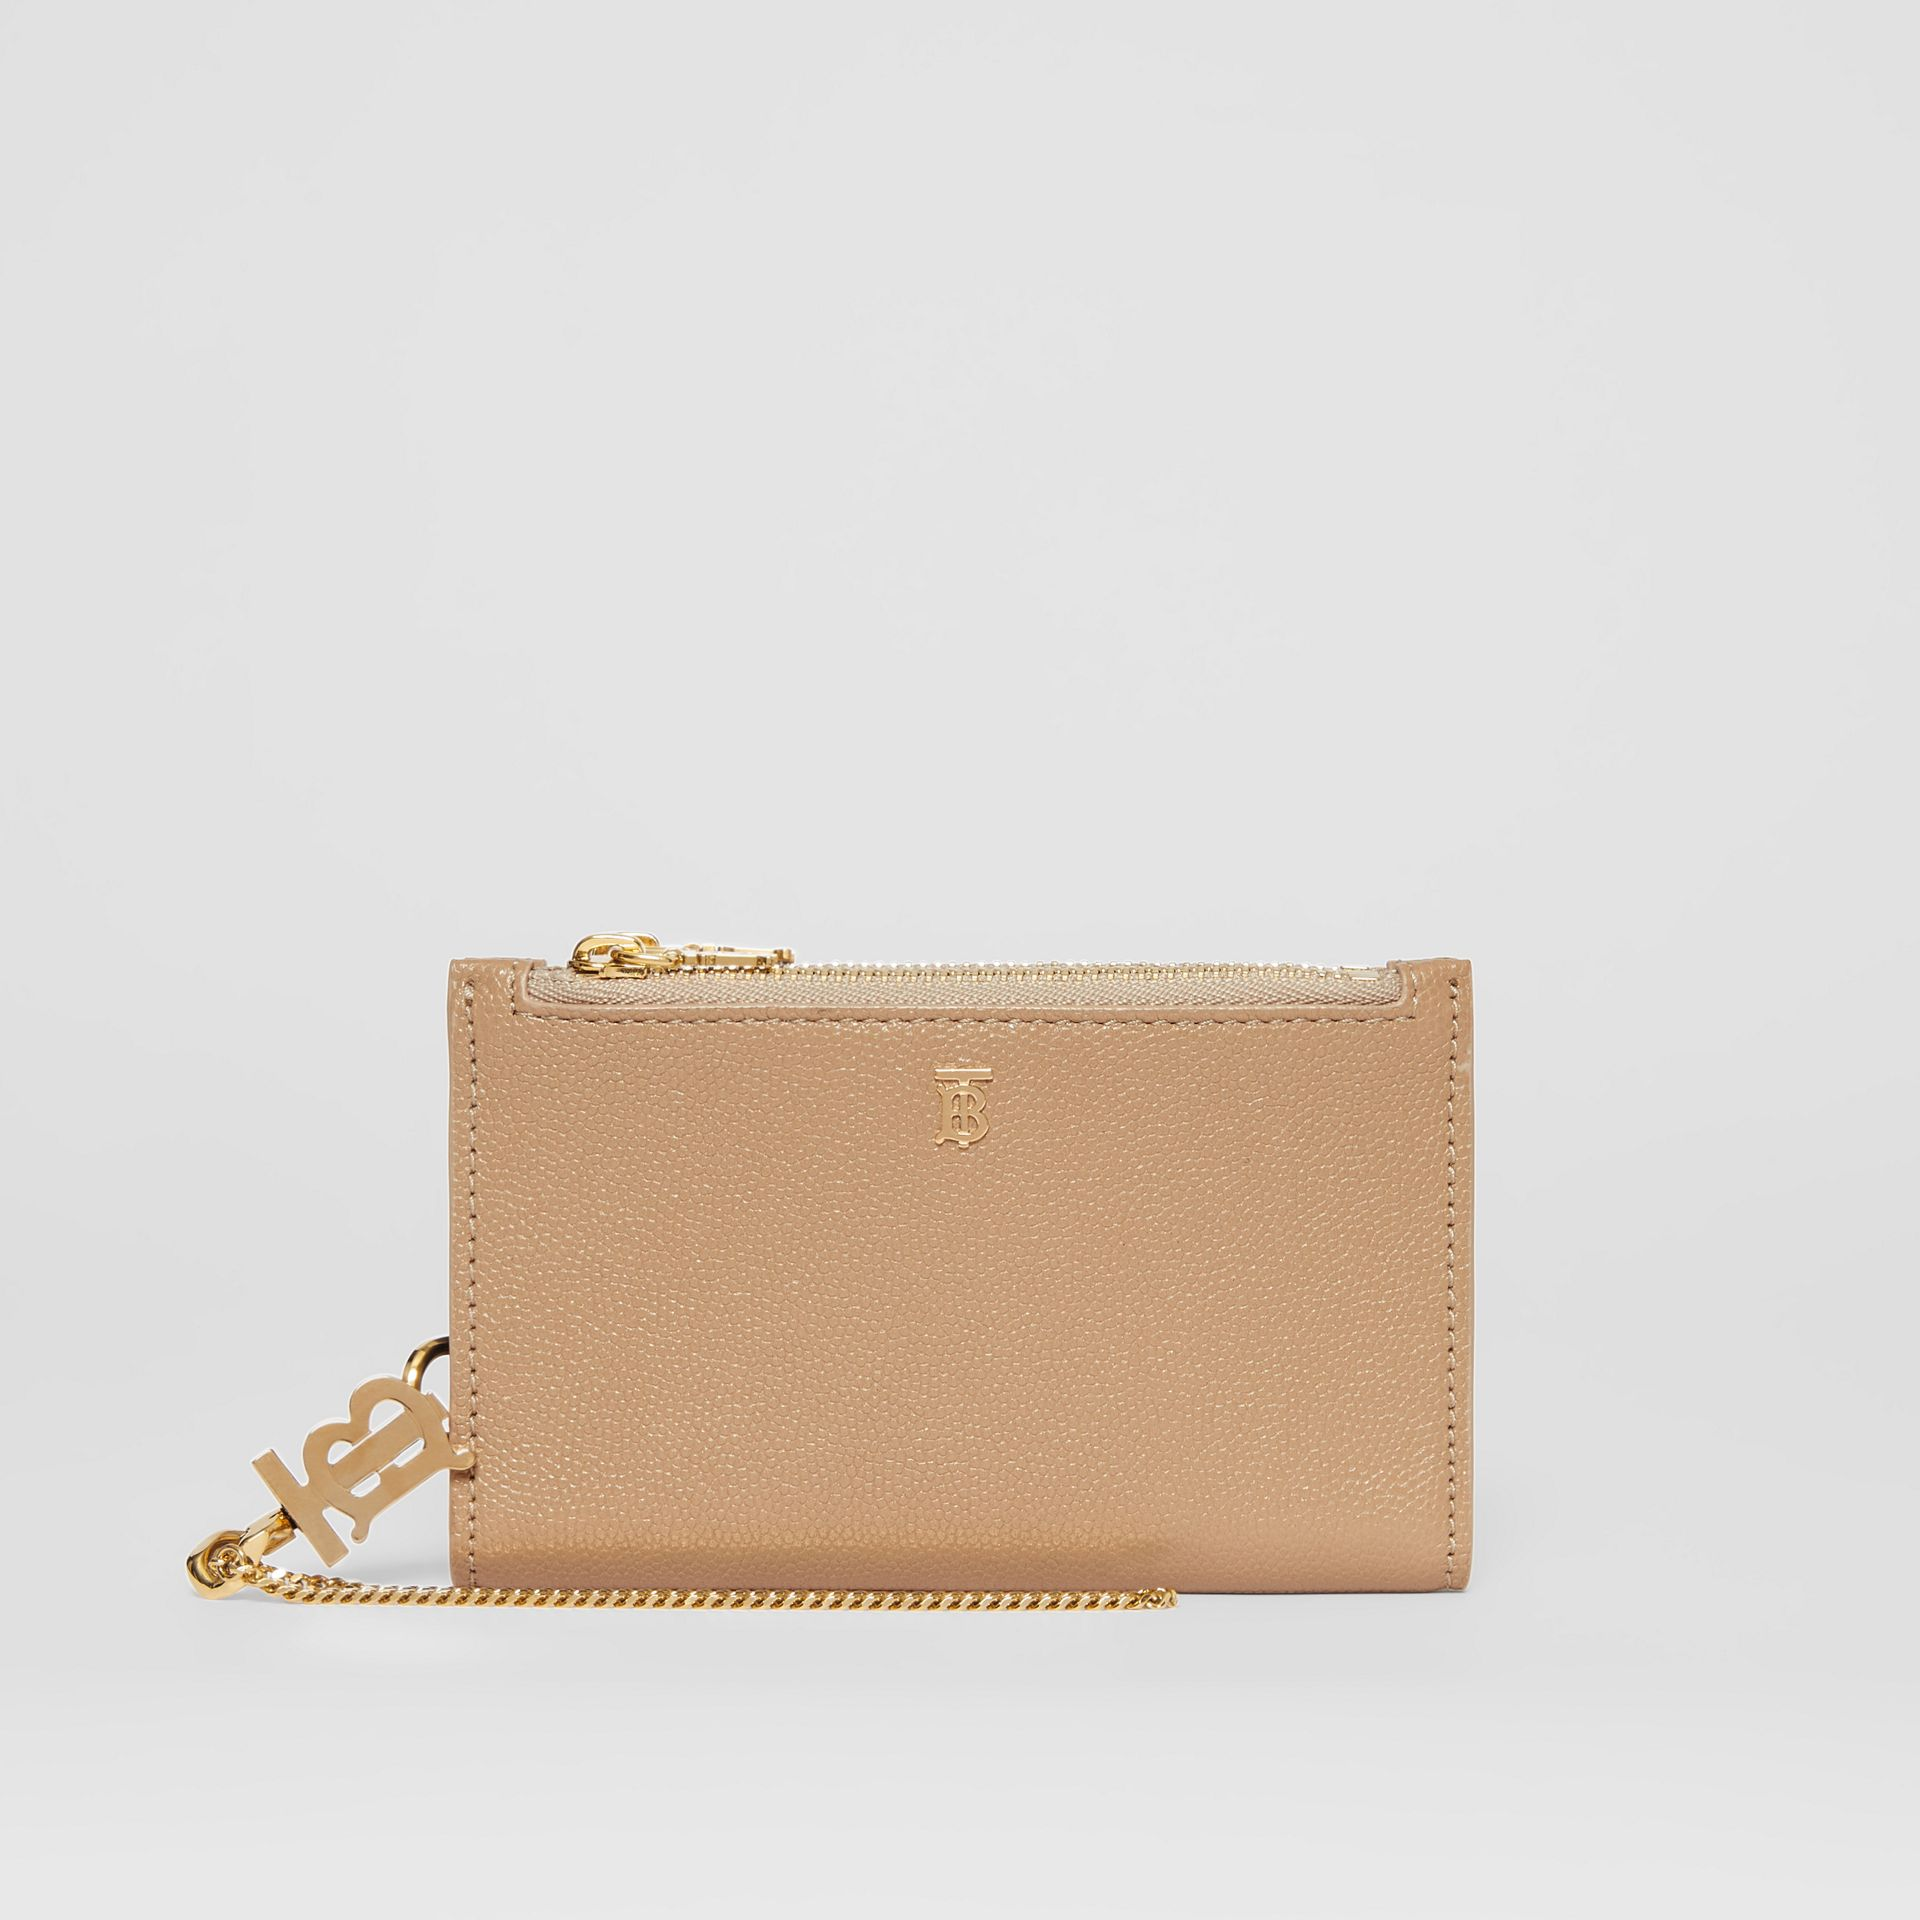 Monogram Motif Grainy Leather Wallet with Detachable Strap in Archive Beige - Women | Burberry - gallery image 0